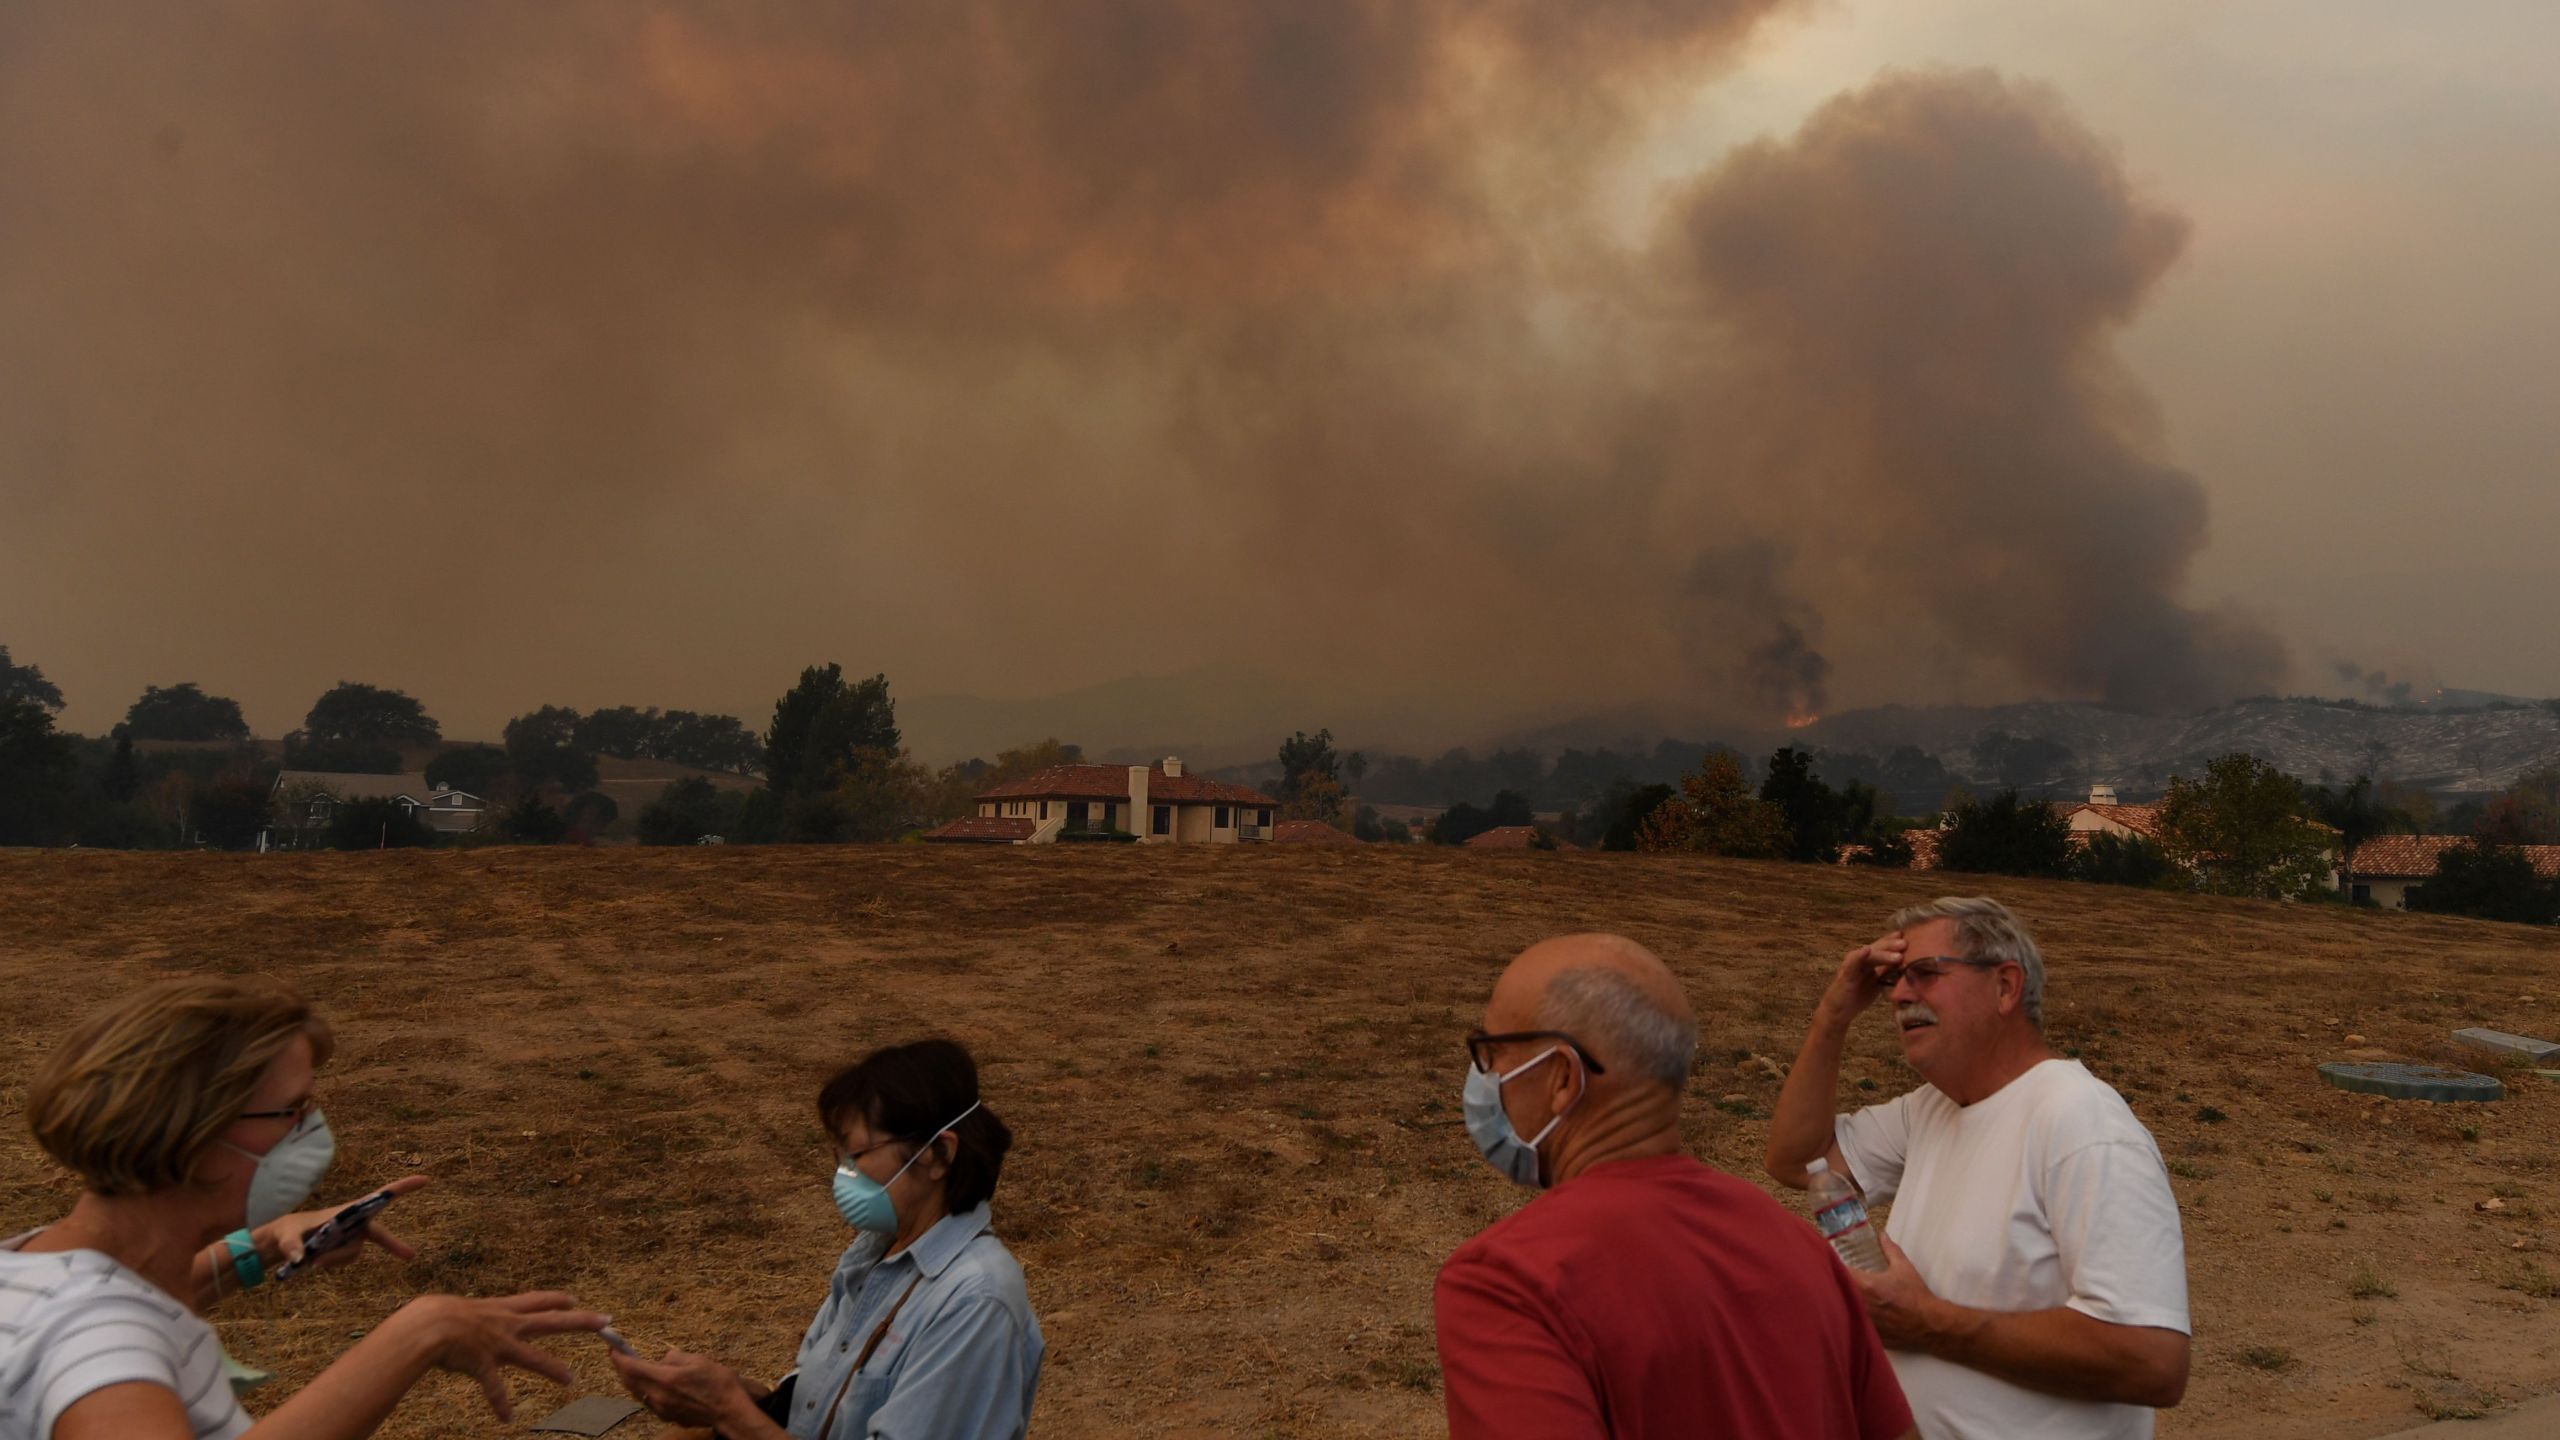 Local residents keep watch while fire and smoke from the Thomas wildfire heads towards their housing estate in Ojai on Dec. 9, 2017. (Credit: Mark Ralston / AFP / Getty Images)